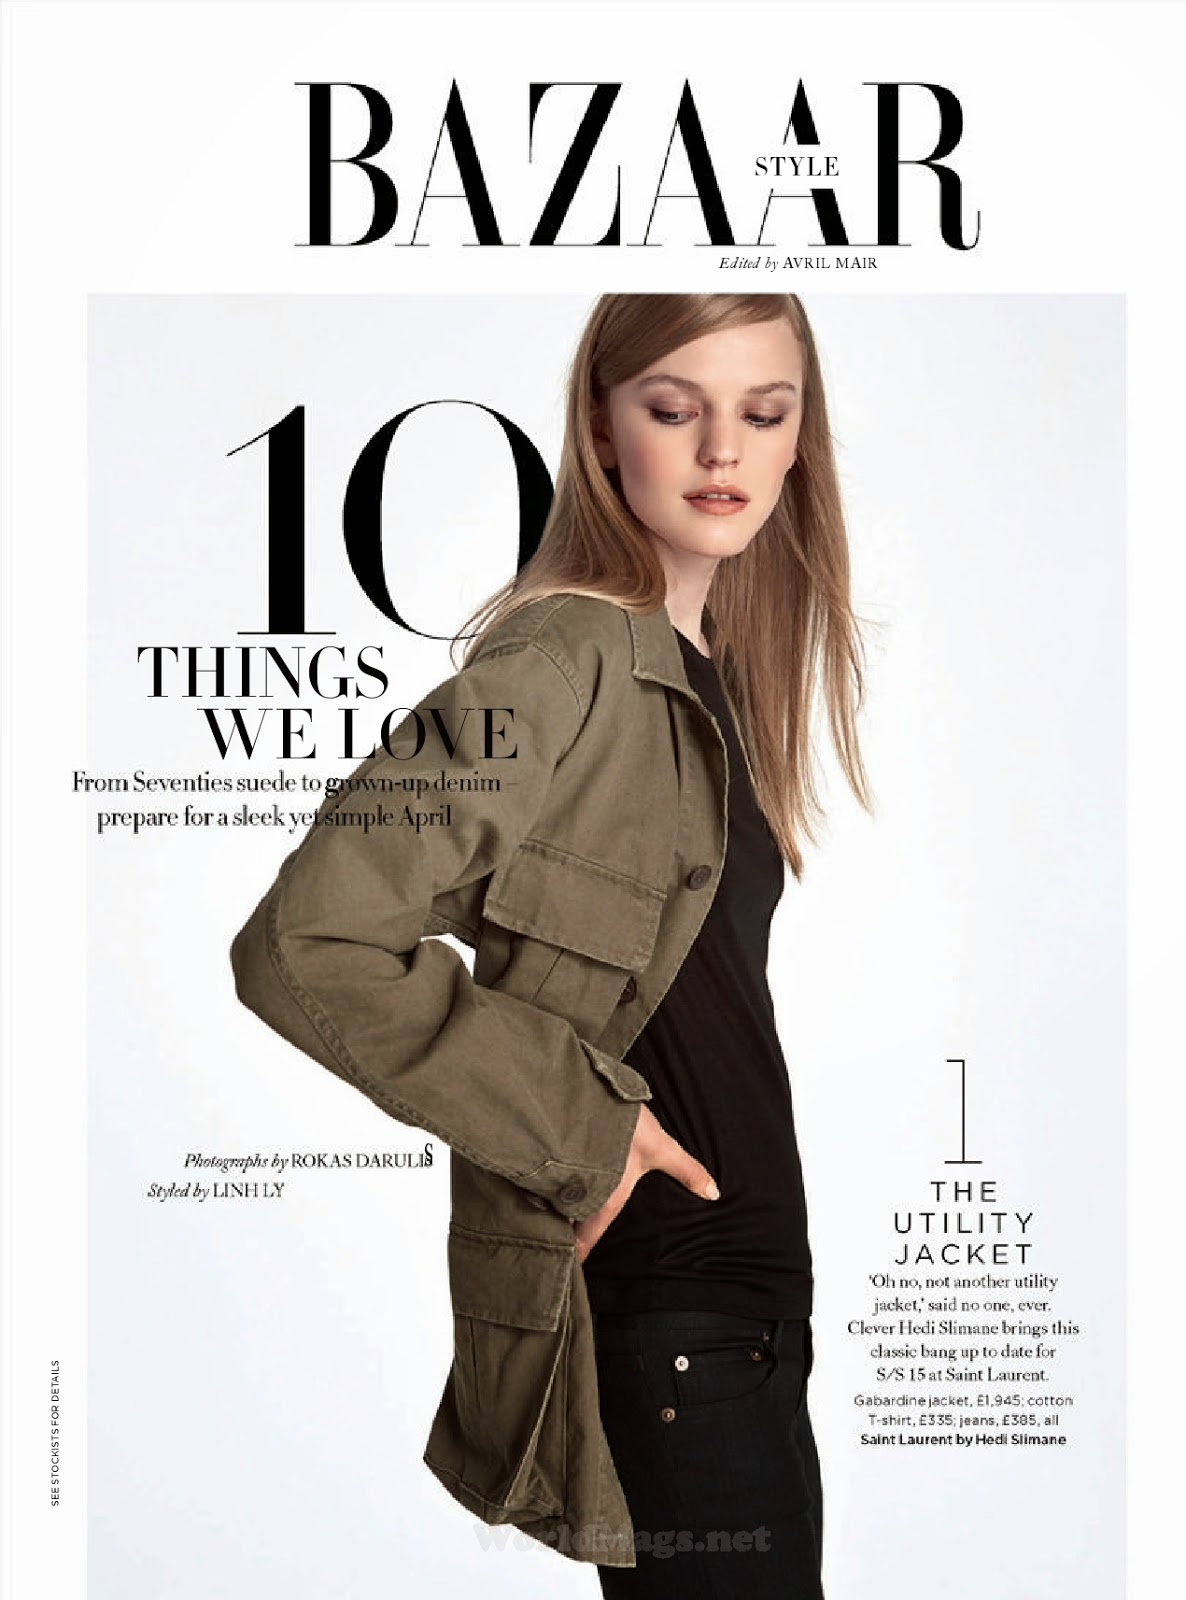 Fashion Model @ Grace Plowden - Harpers Bazaar UK, April 2015